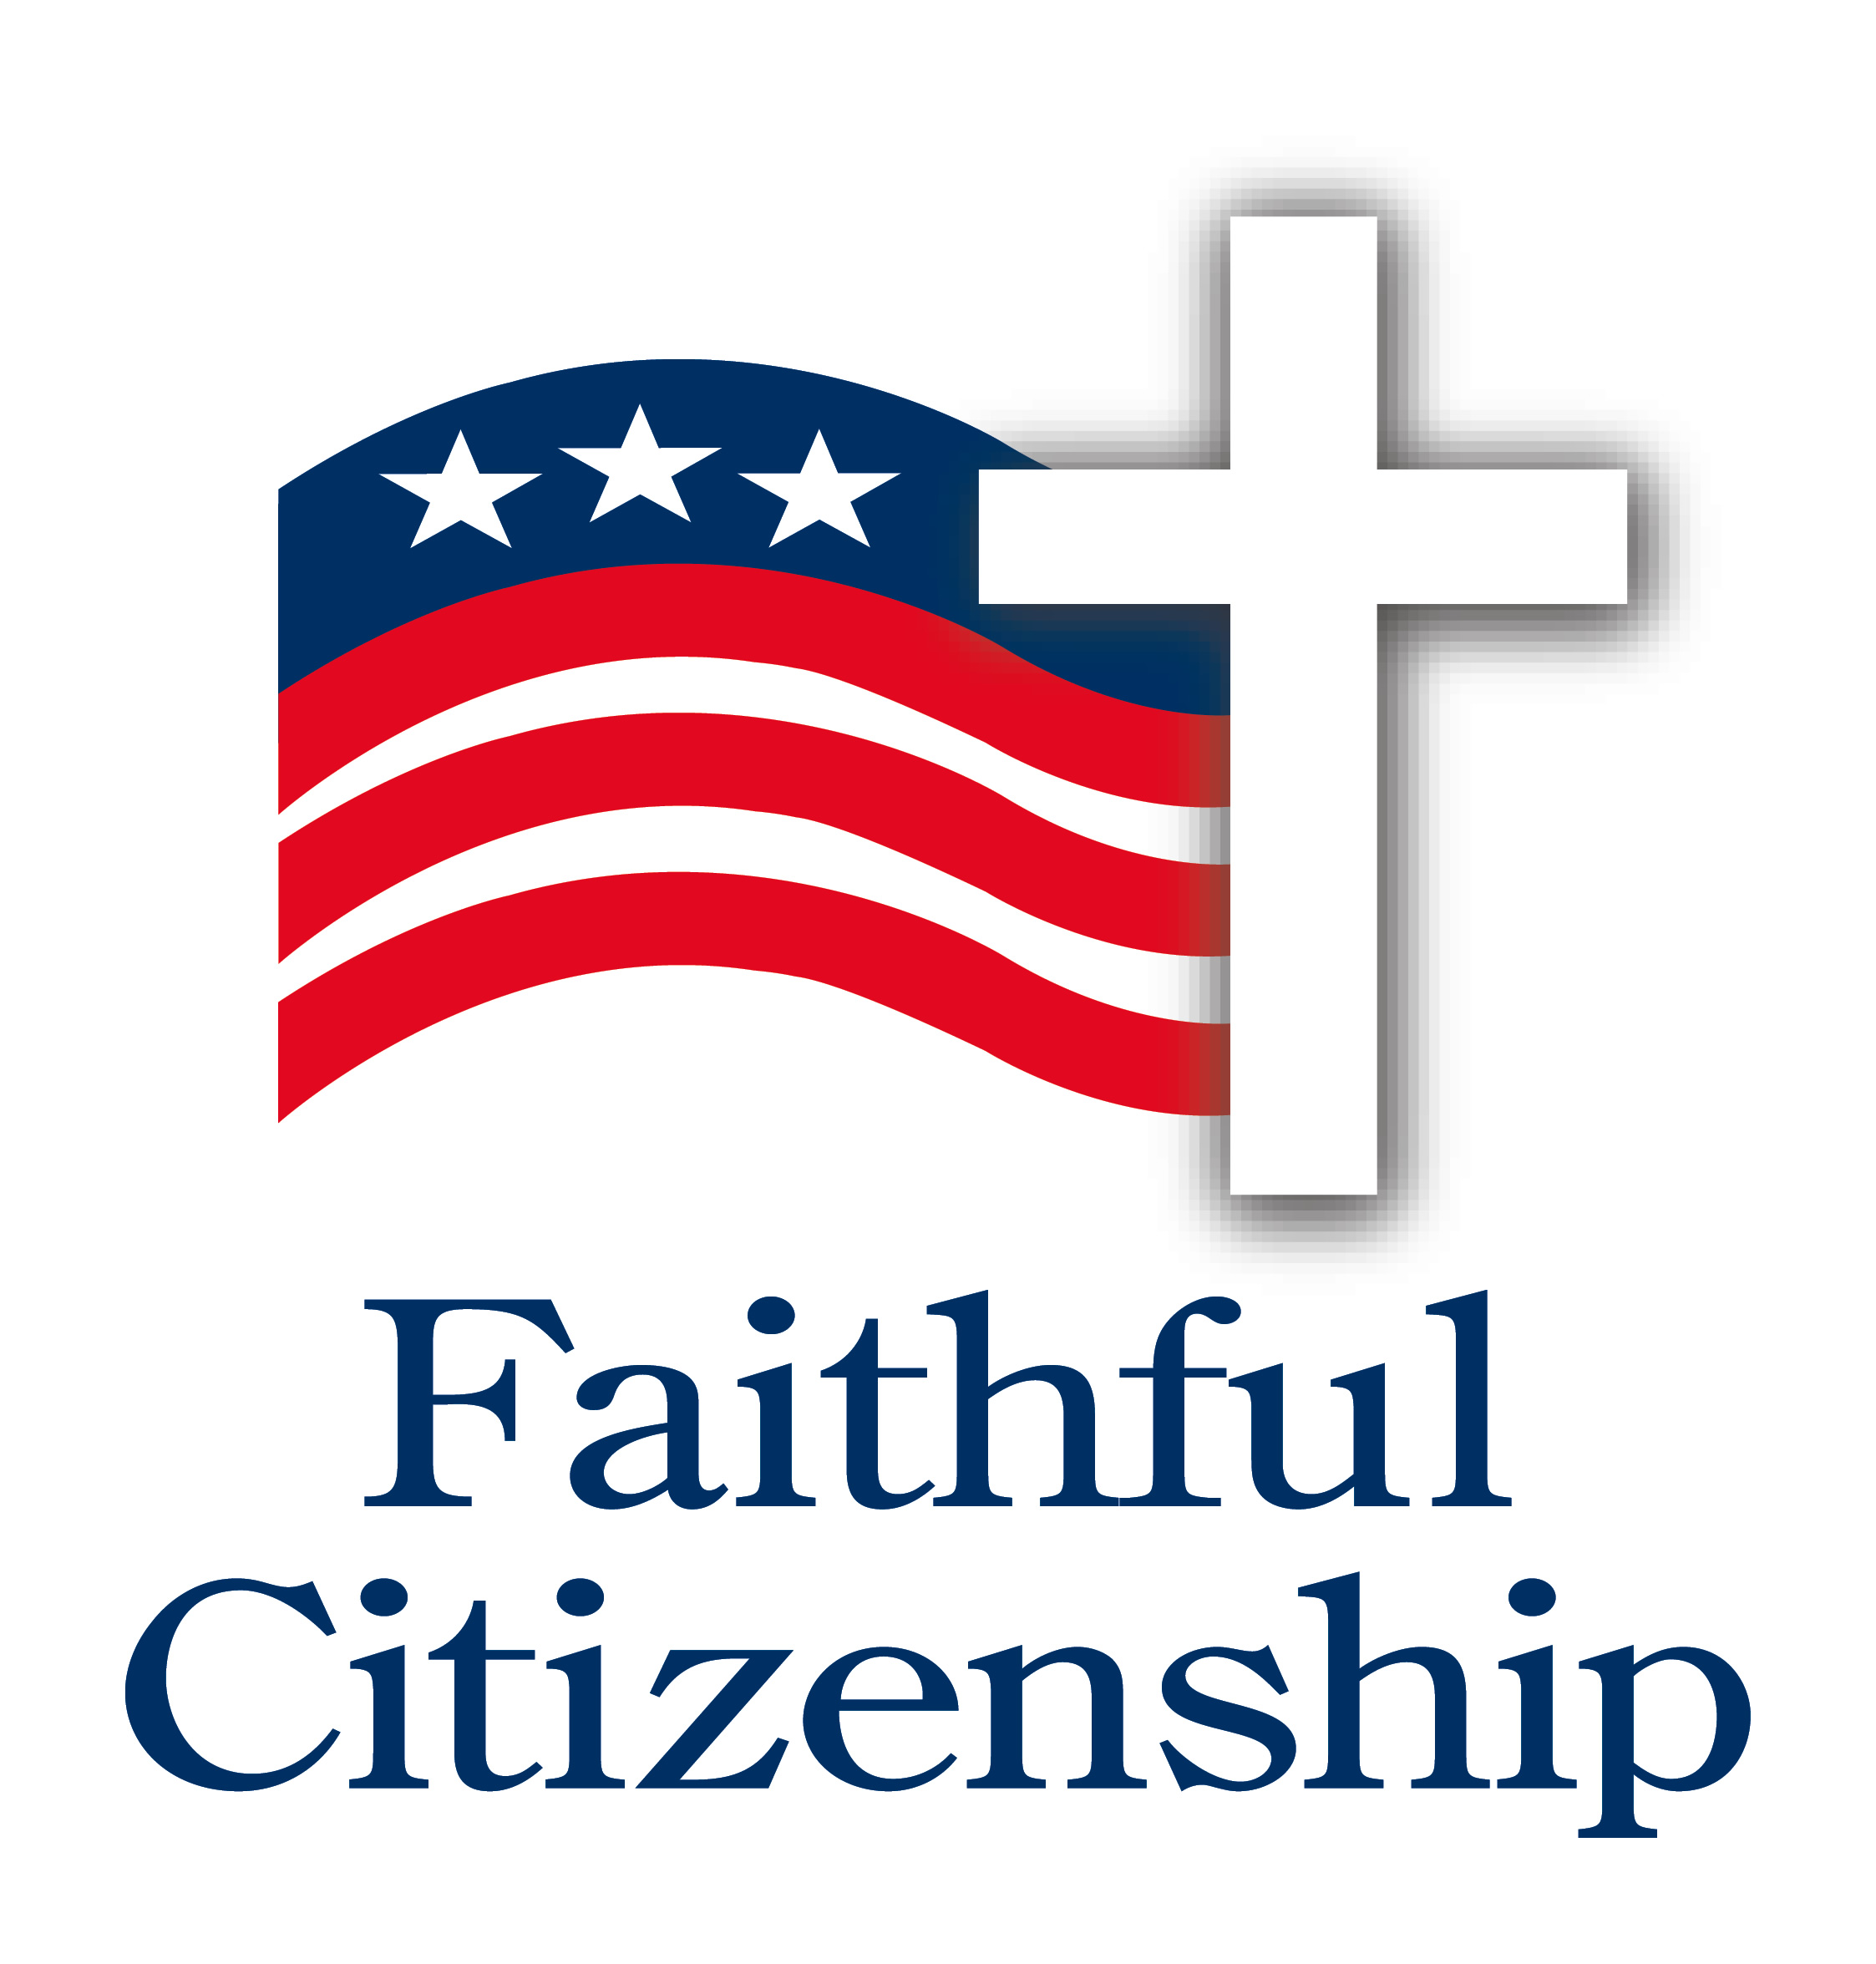 Citizenship: Church Of The Incarnation